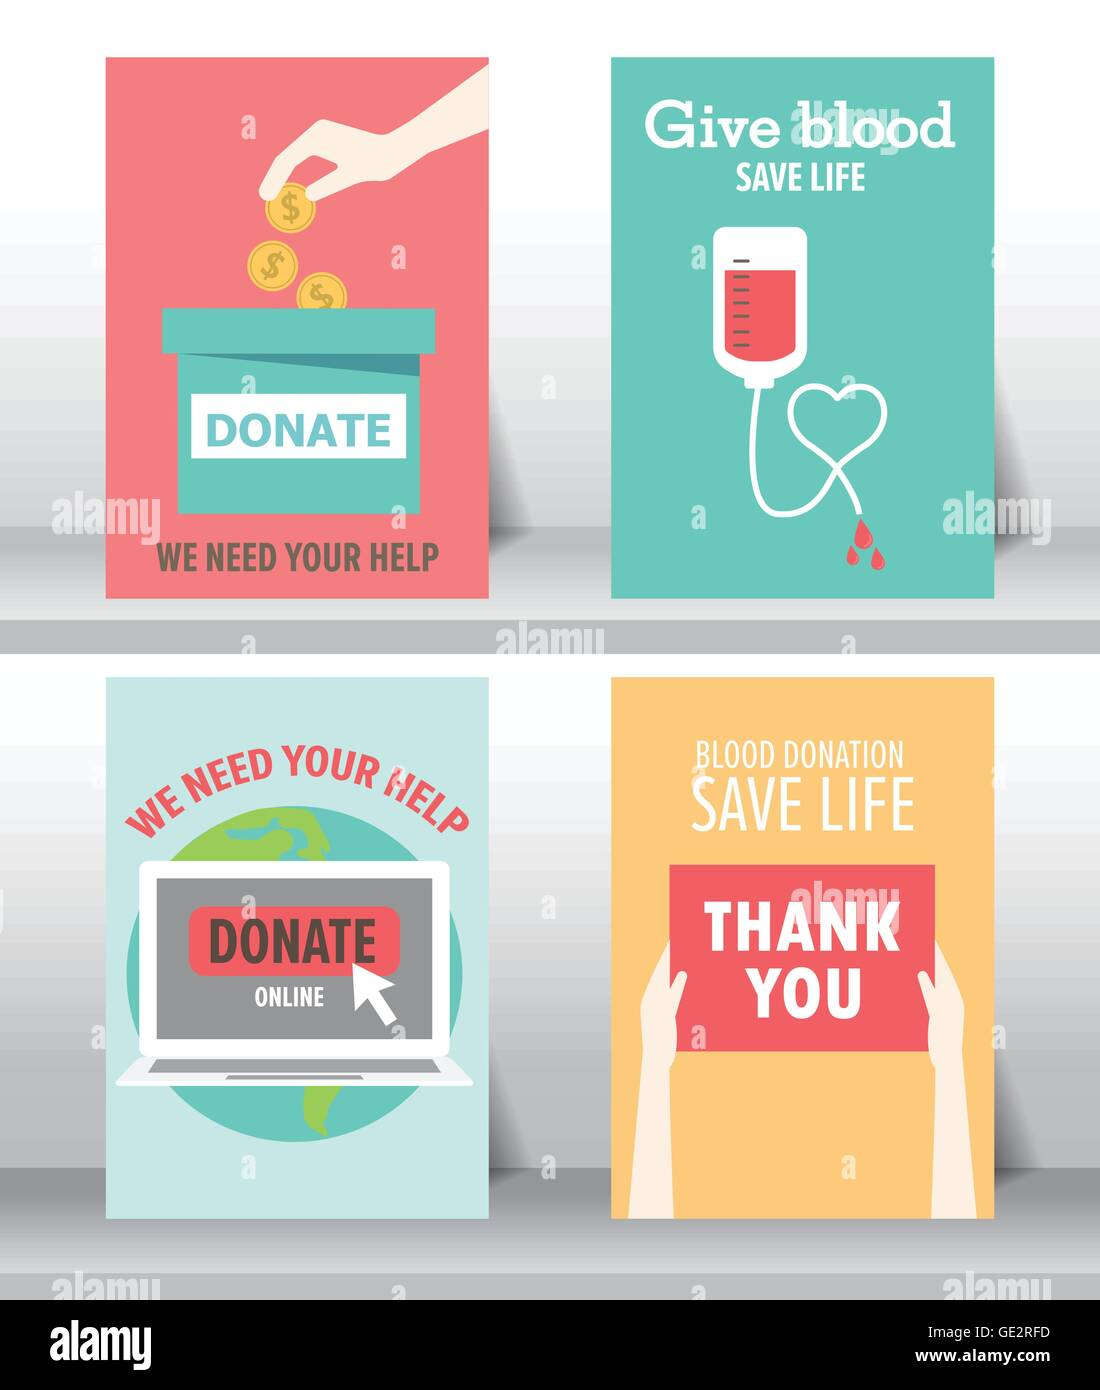 Give And Share Your Love To Poor People Charity And Donation Poster Stock Vector Image Art Alamy